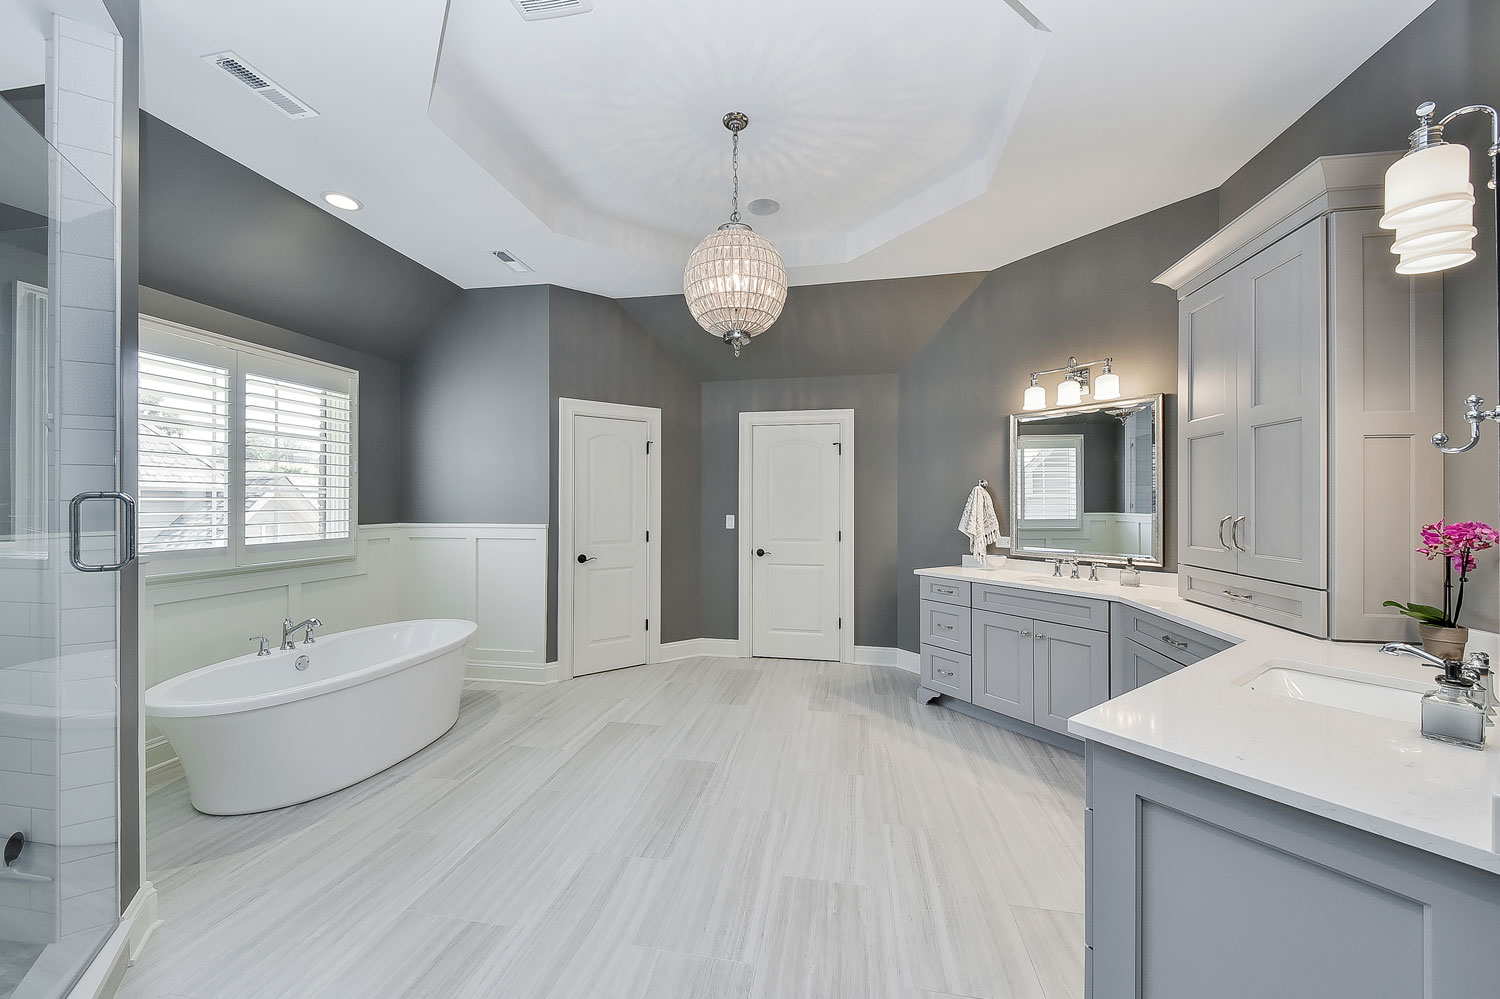 incredible Grey Master Bathroom Part - 6: Naperville Master Bath Grey Cabinetry White Subway Freestanding Tub -  Sebring Design Build ...